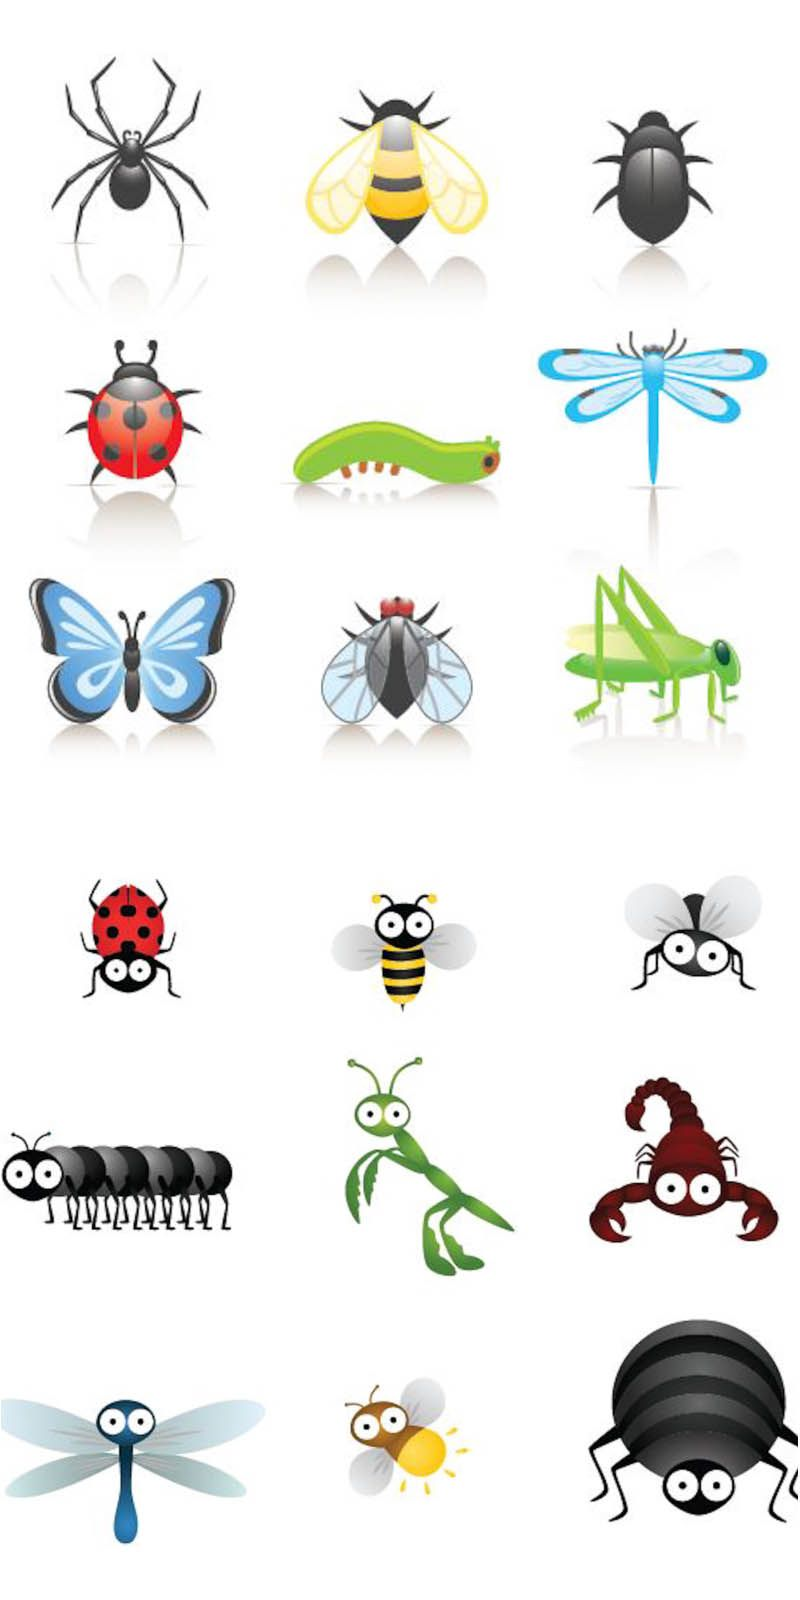 Cartoonbugsclipart cute cartoon insects vector vector cartoonbugsclipart cute cartoon insects vector vector graphics ccuart Image collections